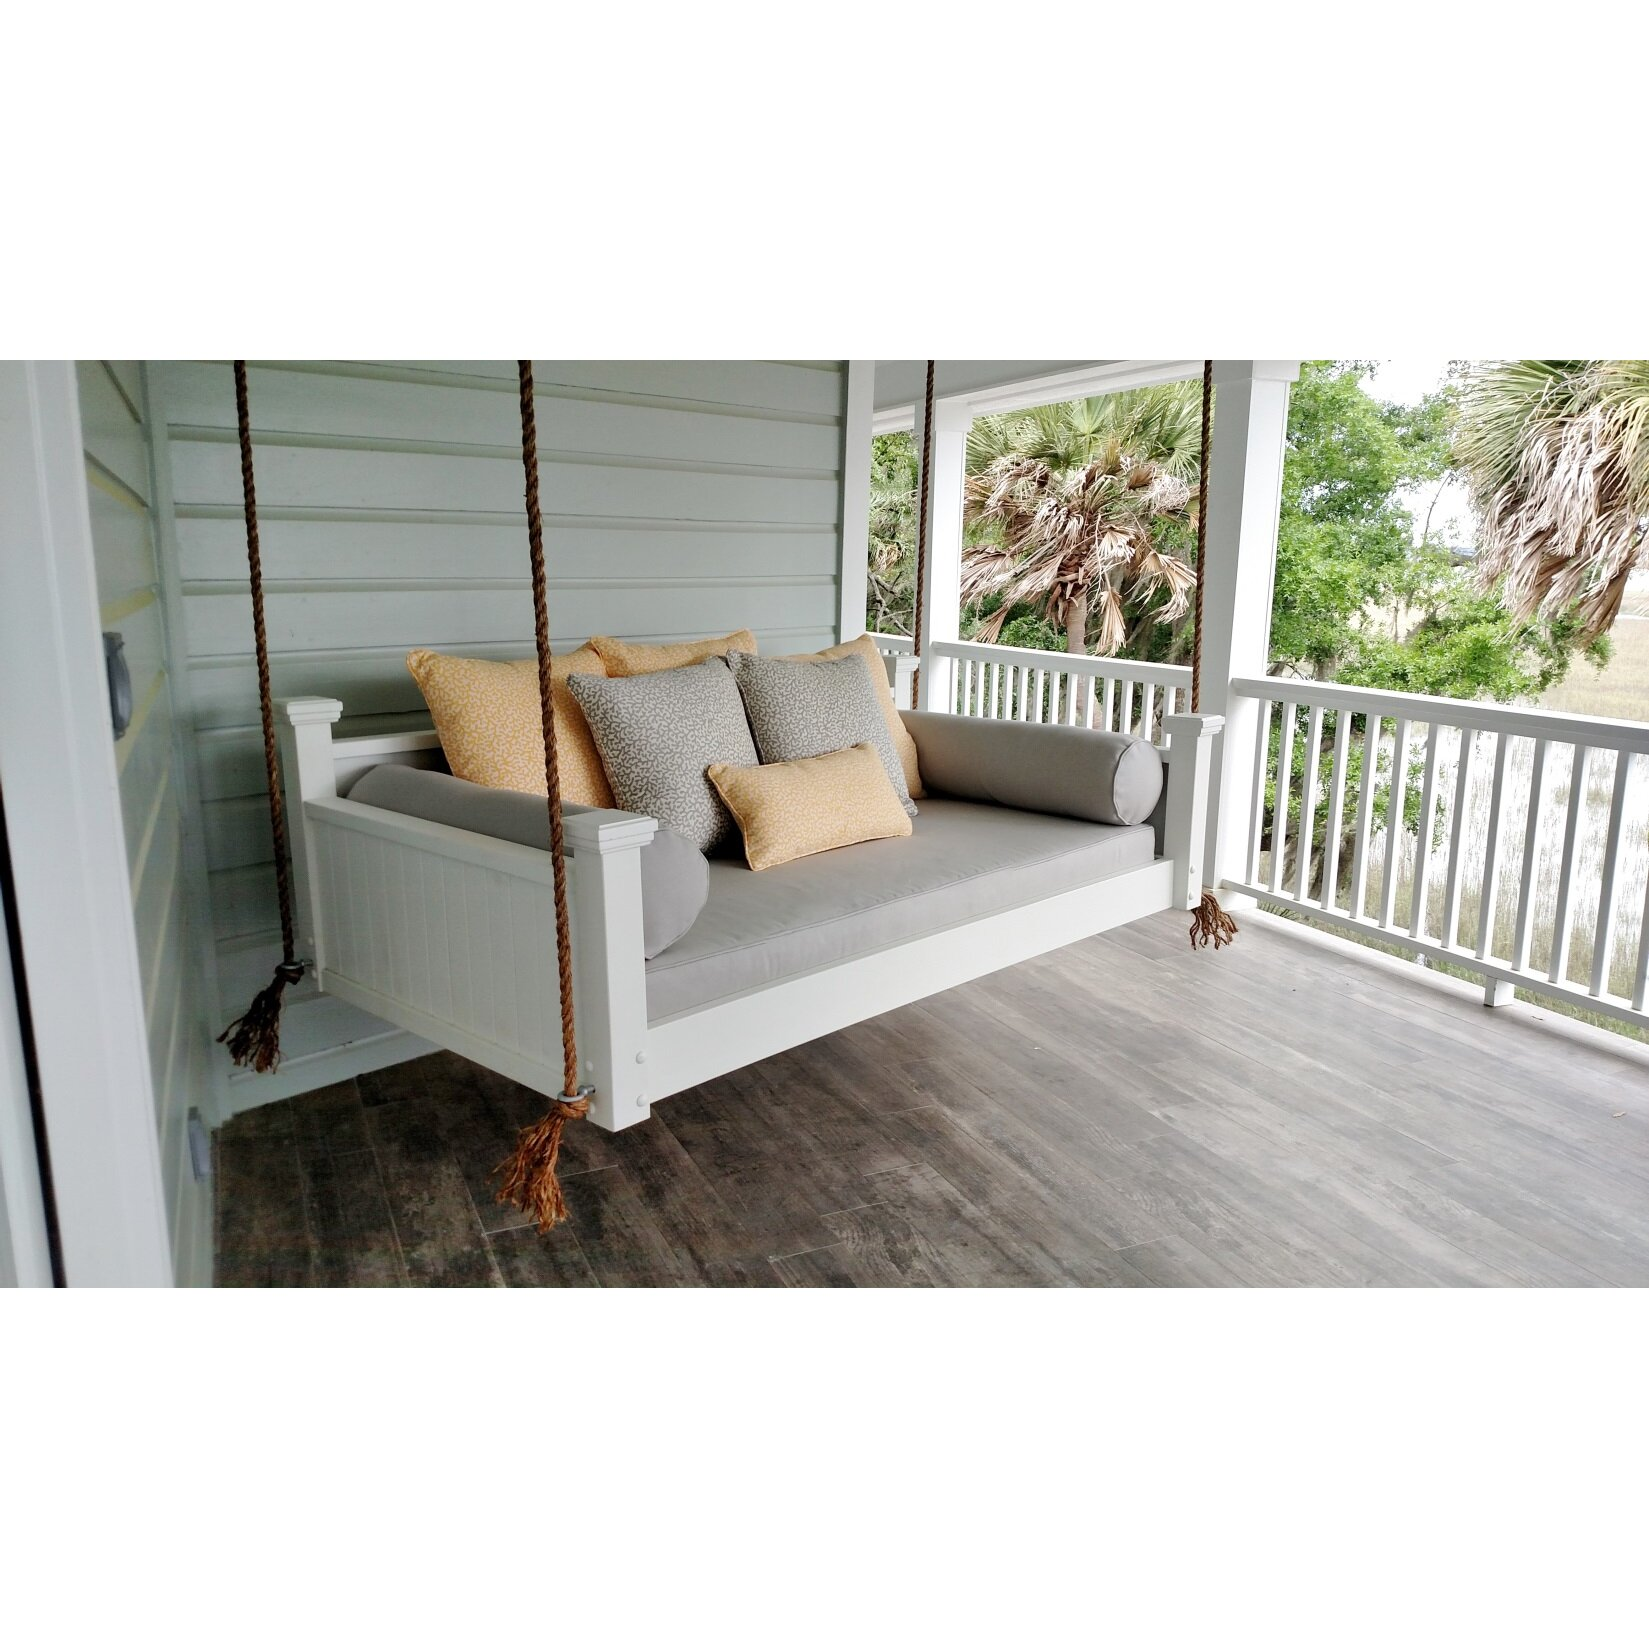 Outdoor Patio Furniture ... Porch Swings Custom Carolina SKU: CCHB1020